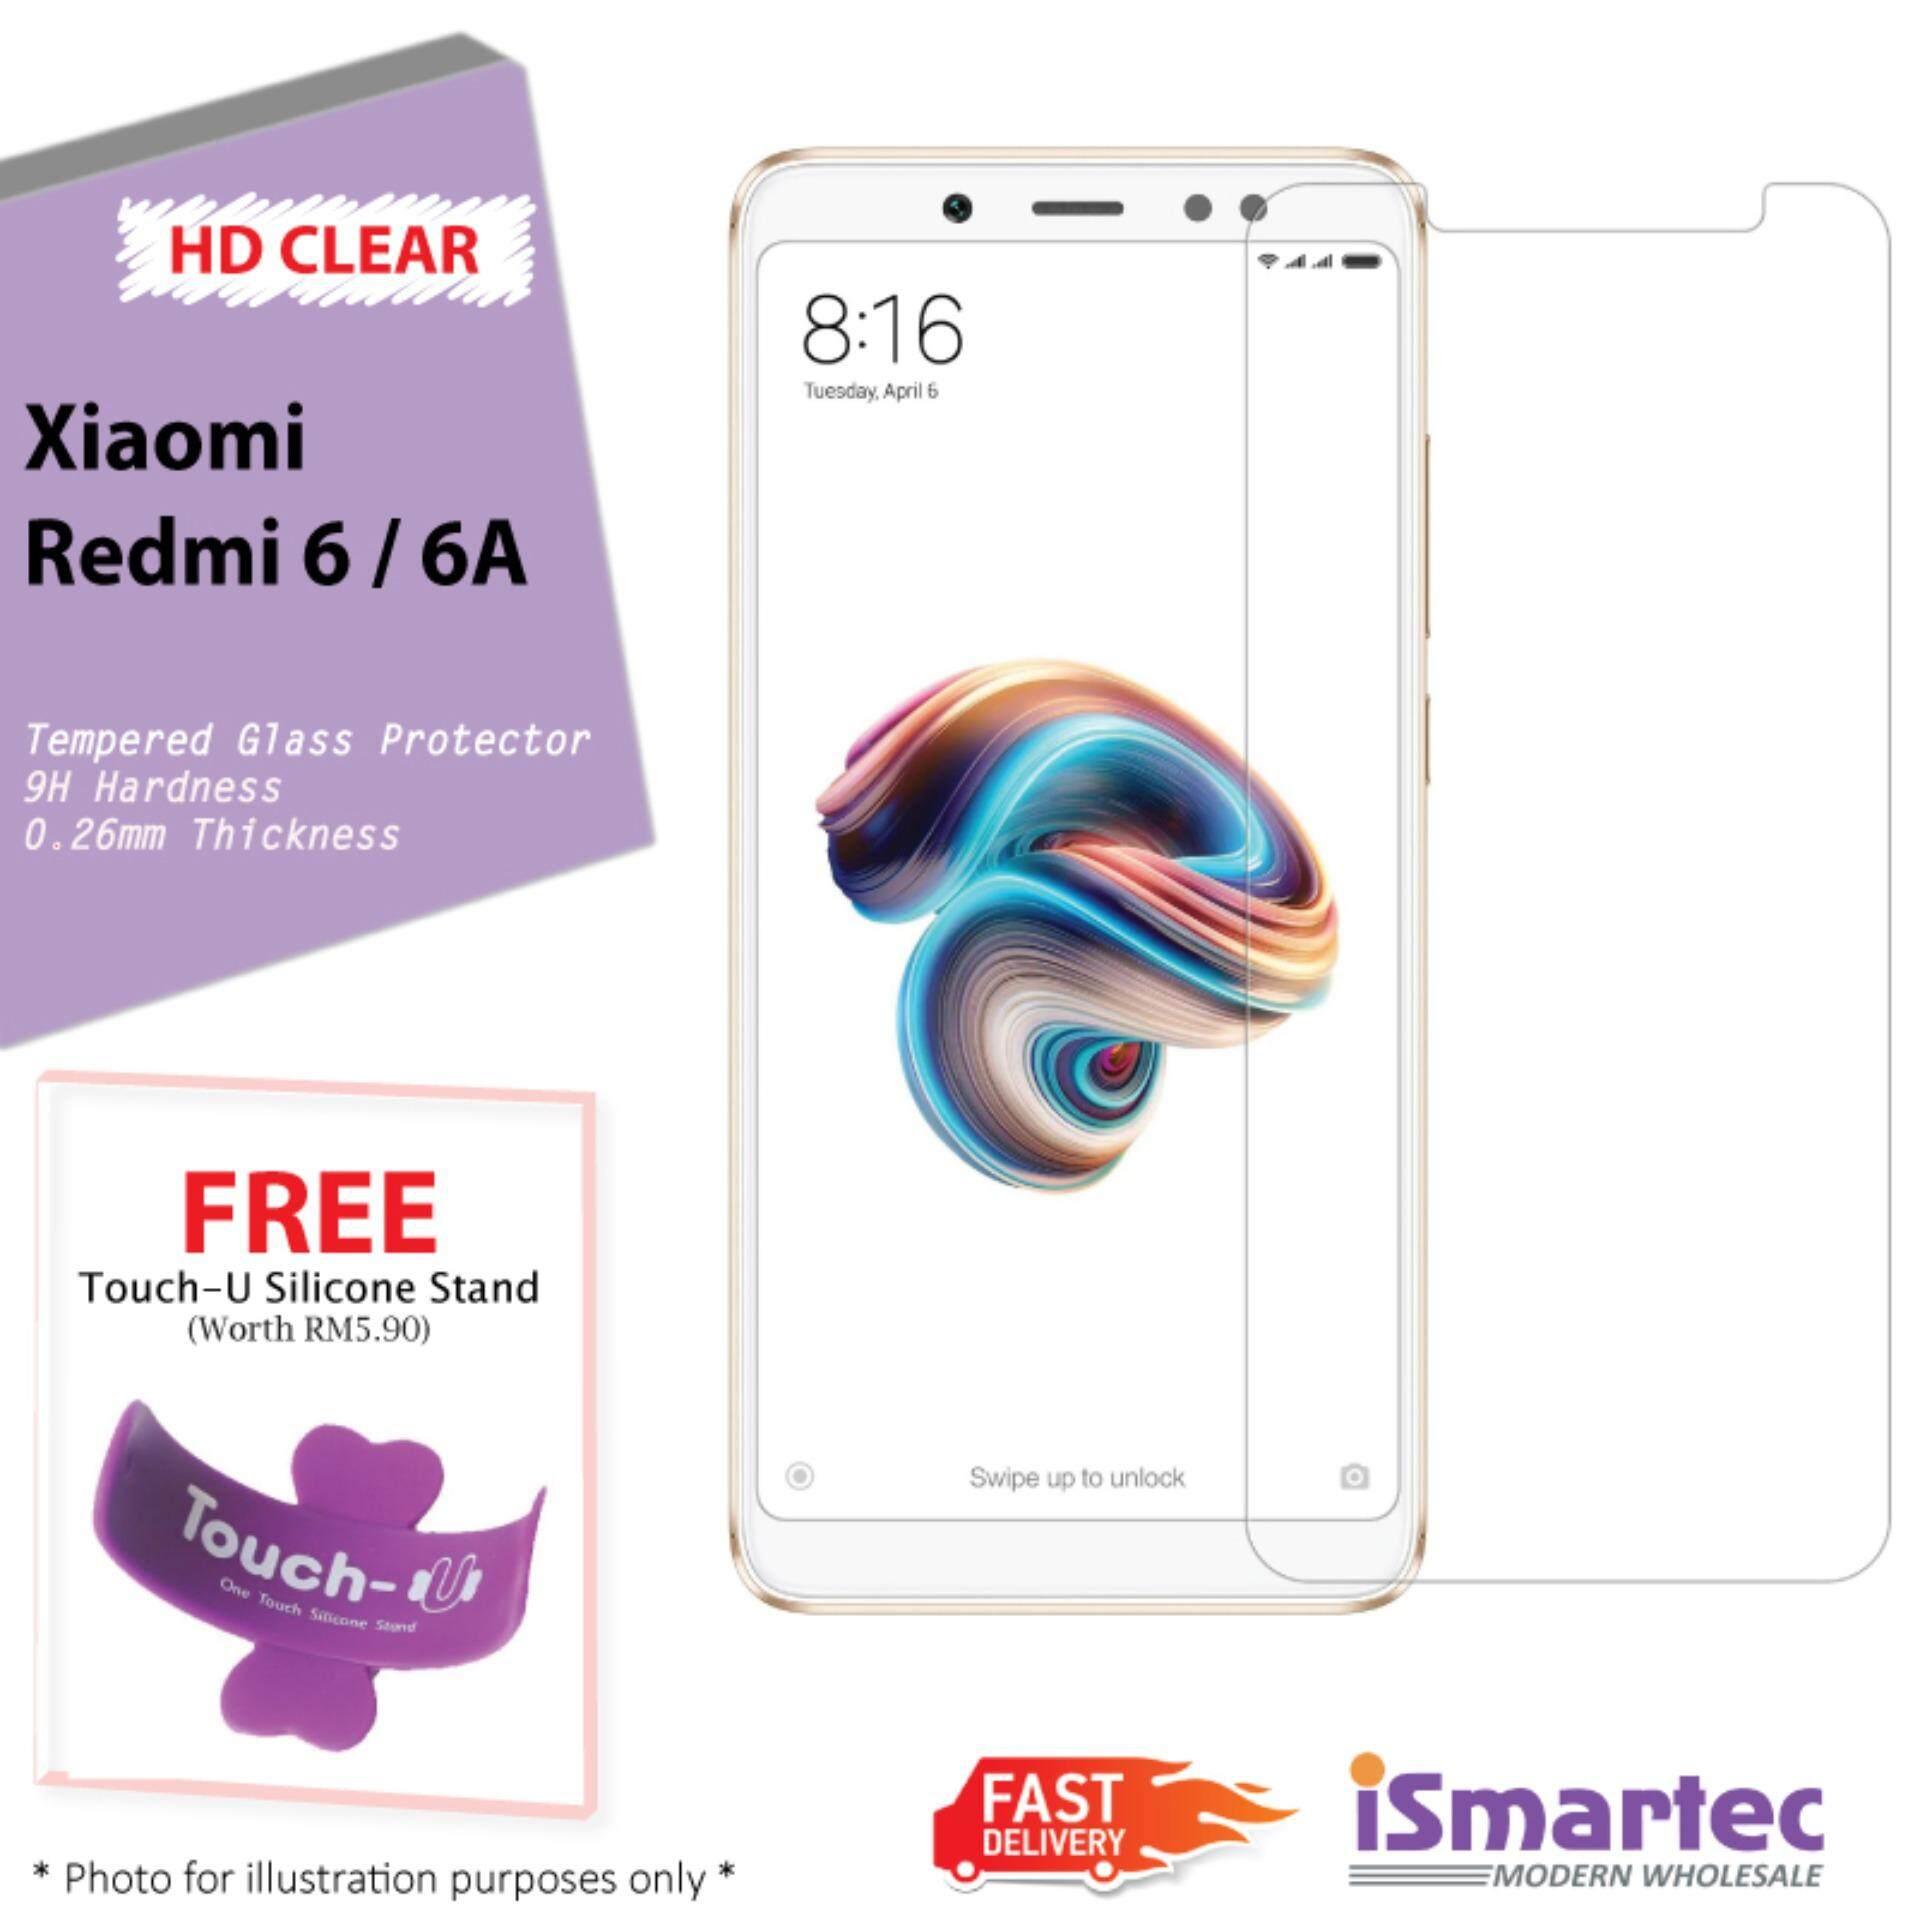 Xiaomi Screen Protectors For The Best Prices In Malaysia Tempered Glass Full Cover Mi5s White Hd Redmi 6 6a Free Touch U